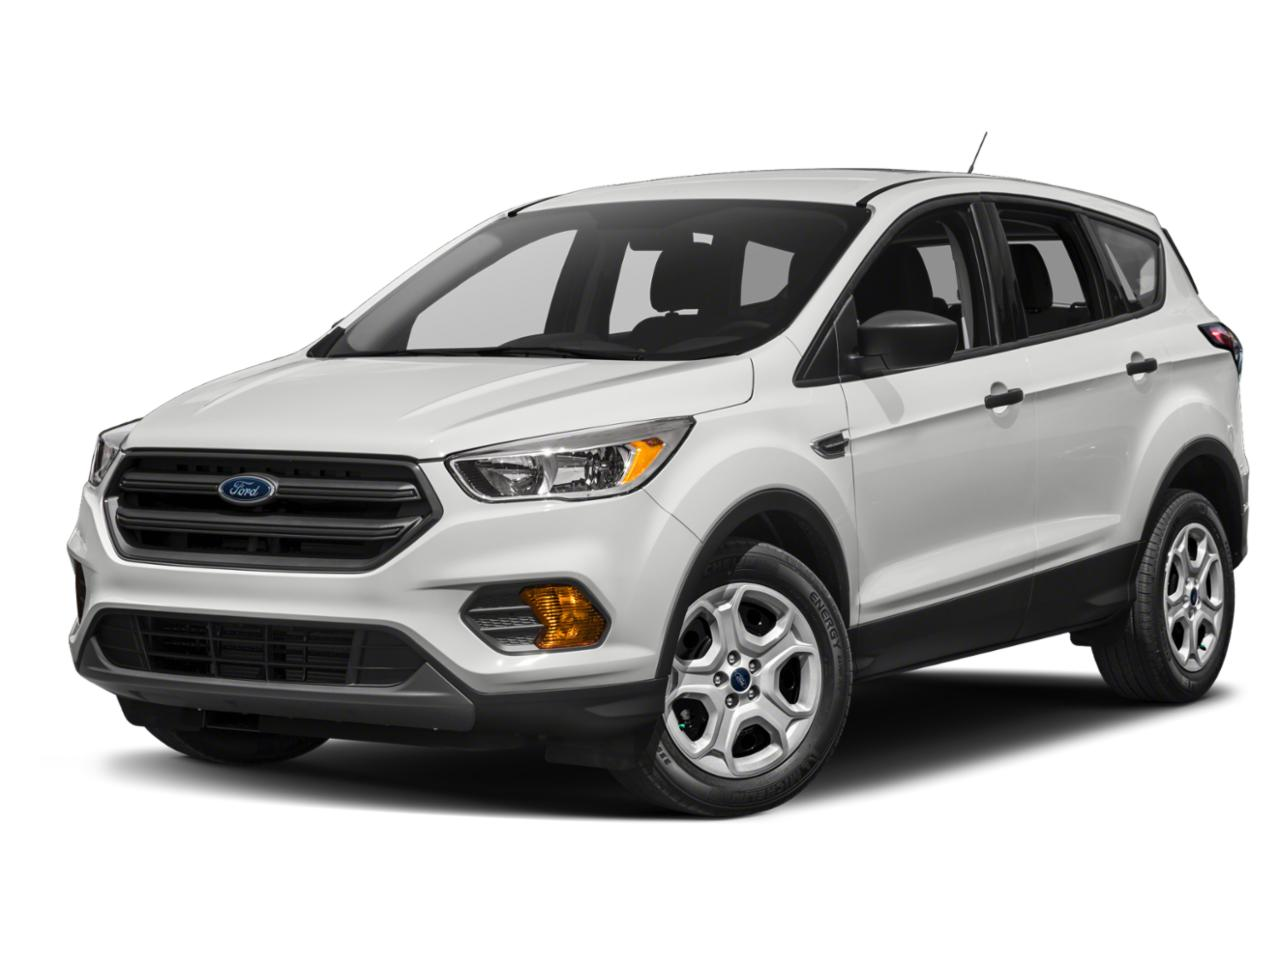 2019 Ford Escape Vehicle Photo in Novato, CA 94945